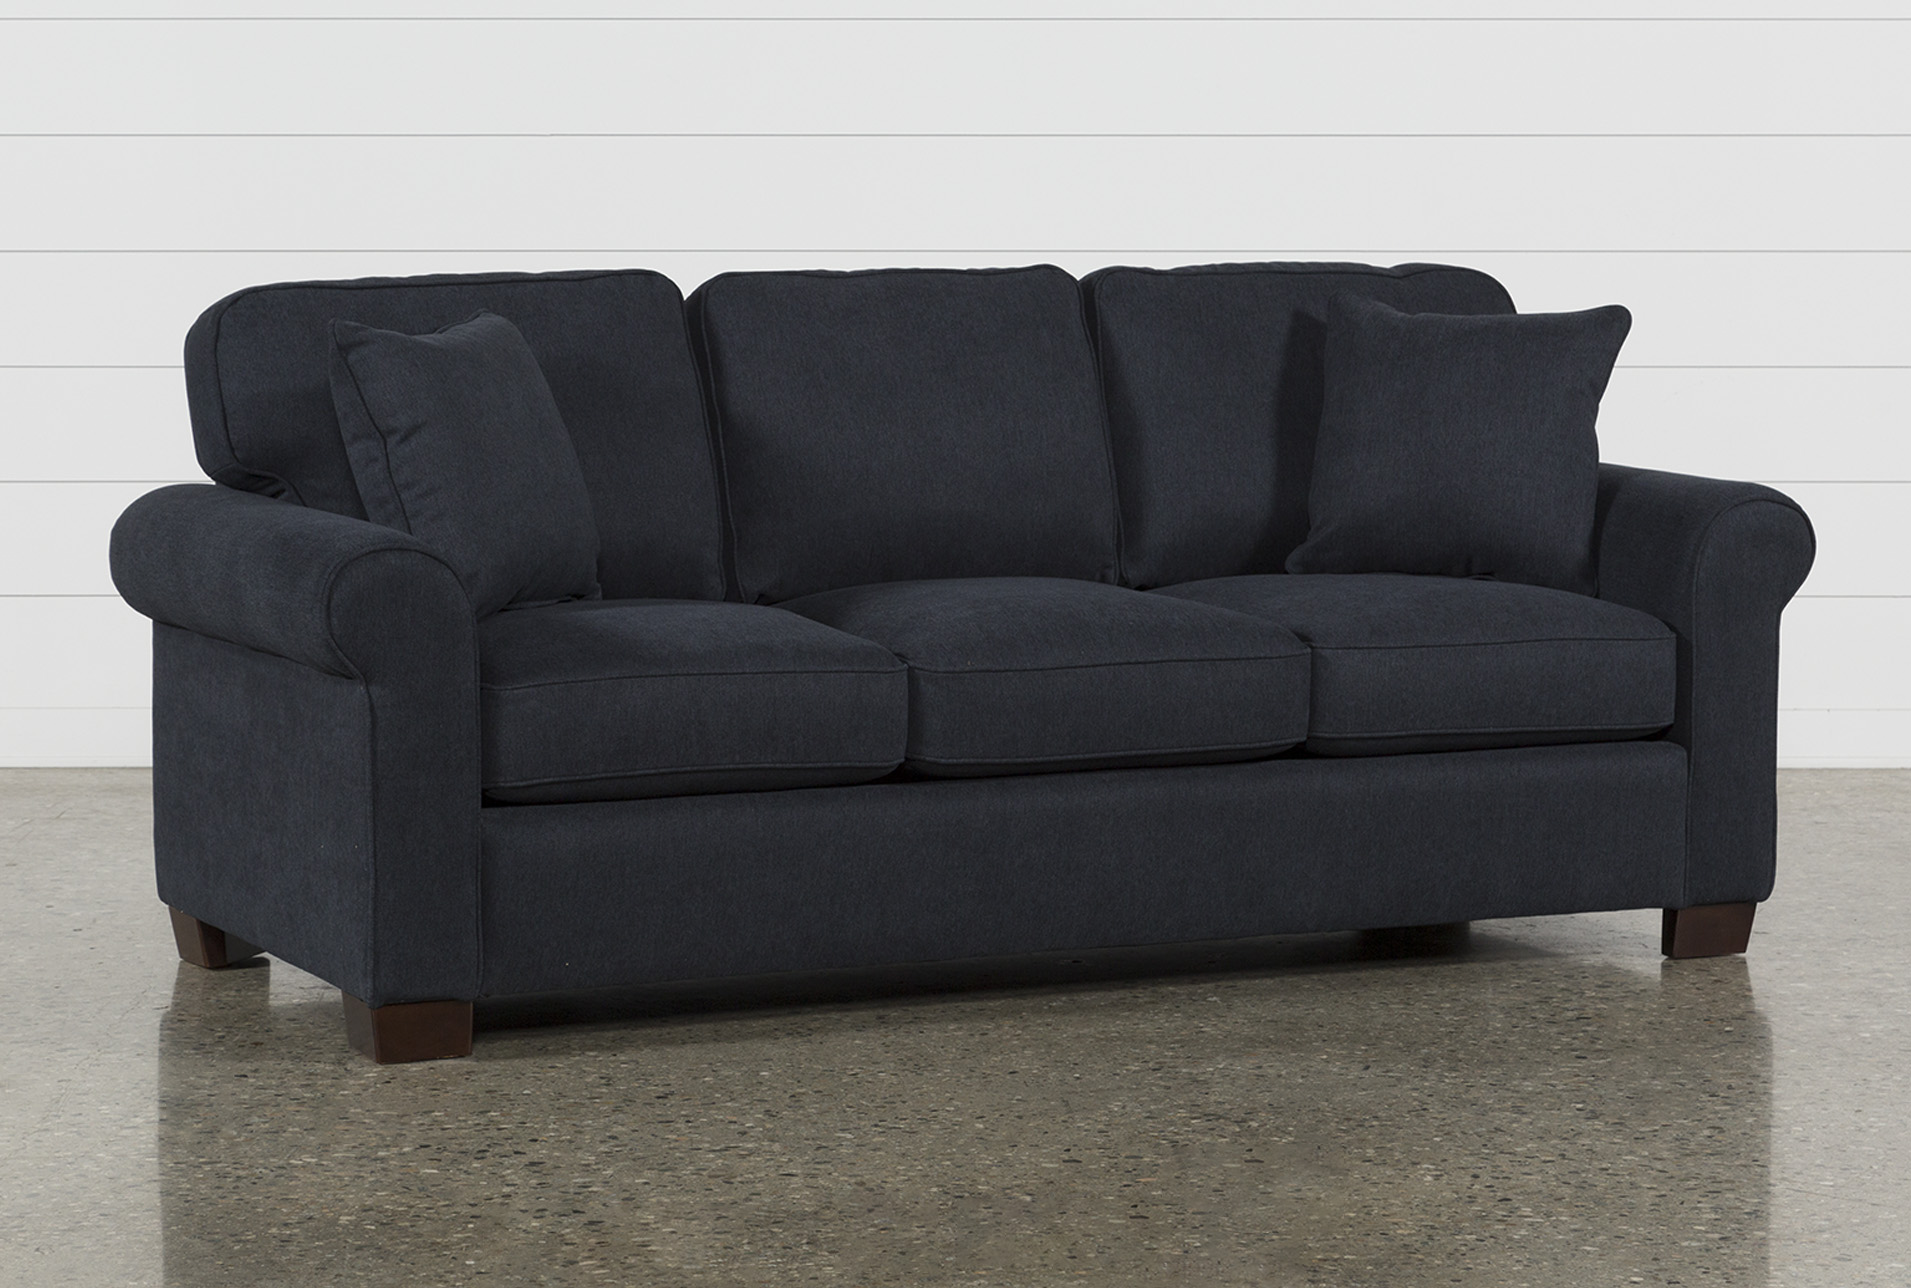 Small Space Sofa Beds + Sleeper Sofas - Free Assembly with Delivery